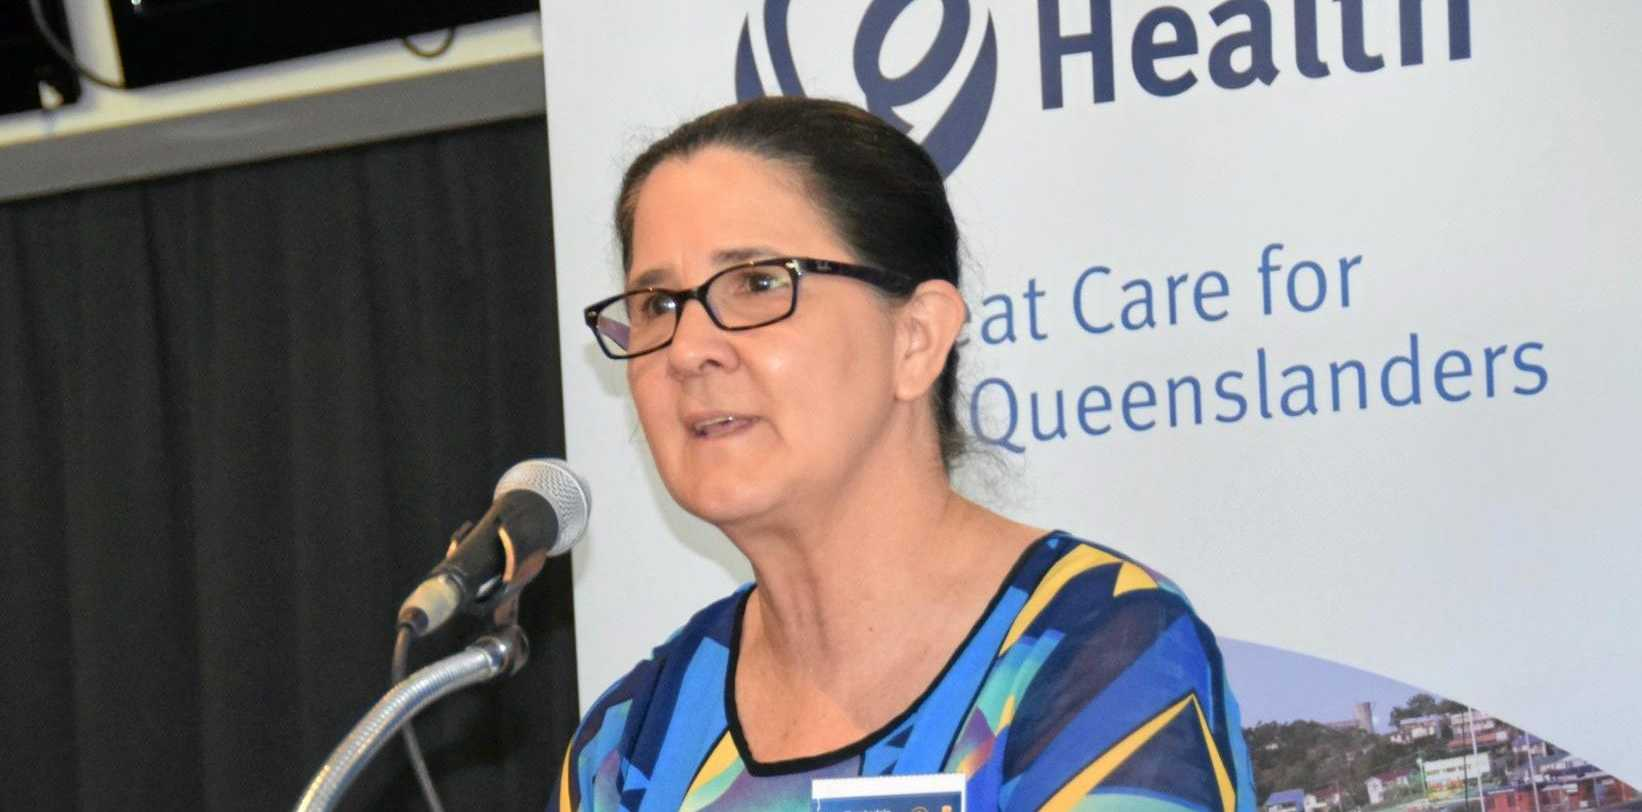 SMOKING SUMMIT: Local General Practitioner Dr Joan Chamberlain gave a speech at a smoking summit in Rockhampton yesterday.